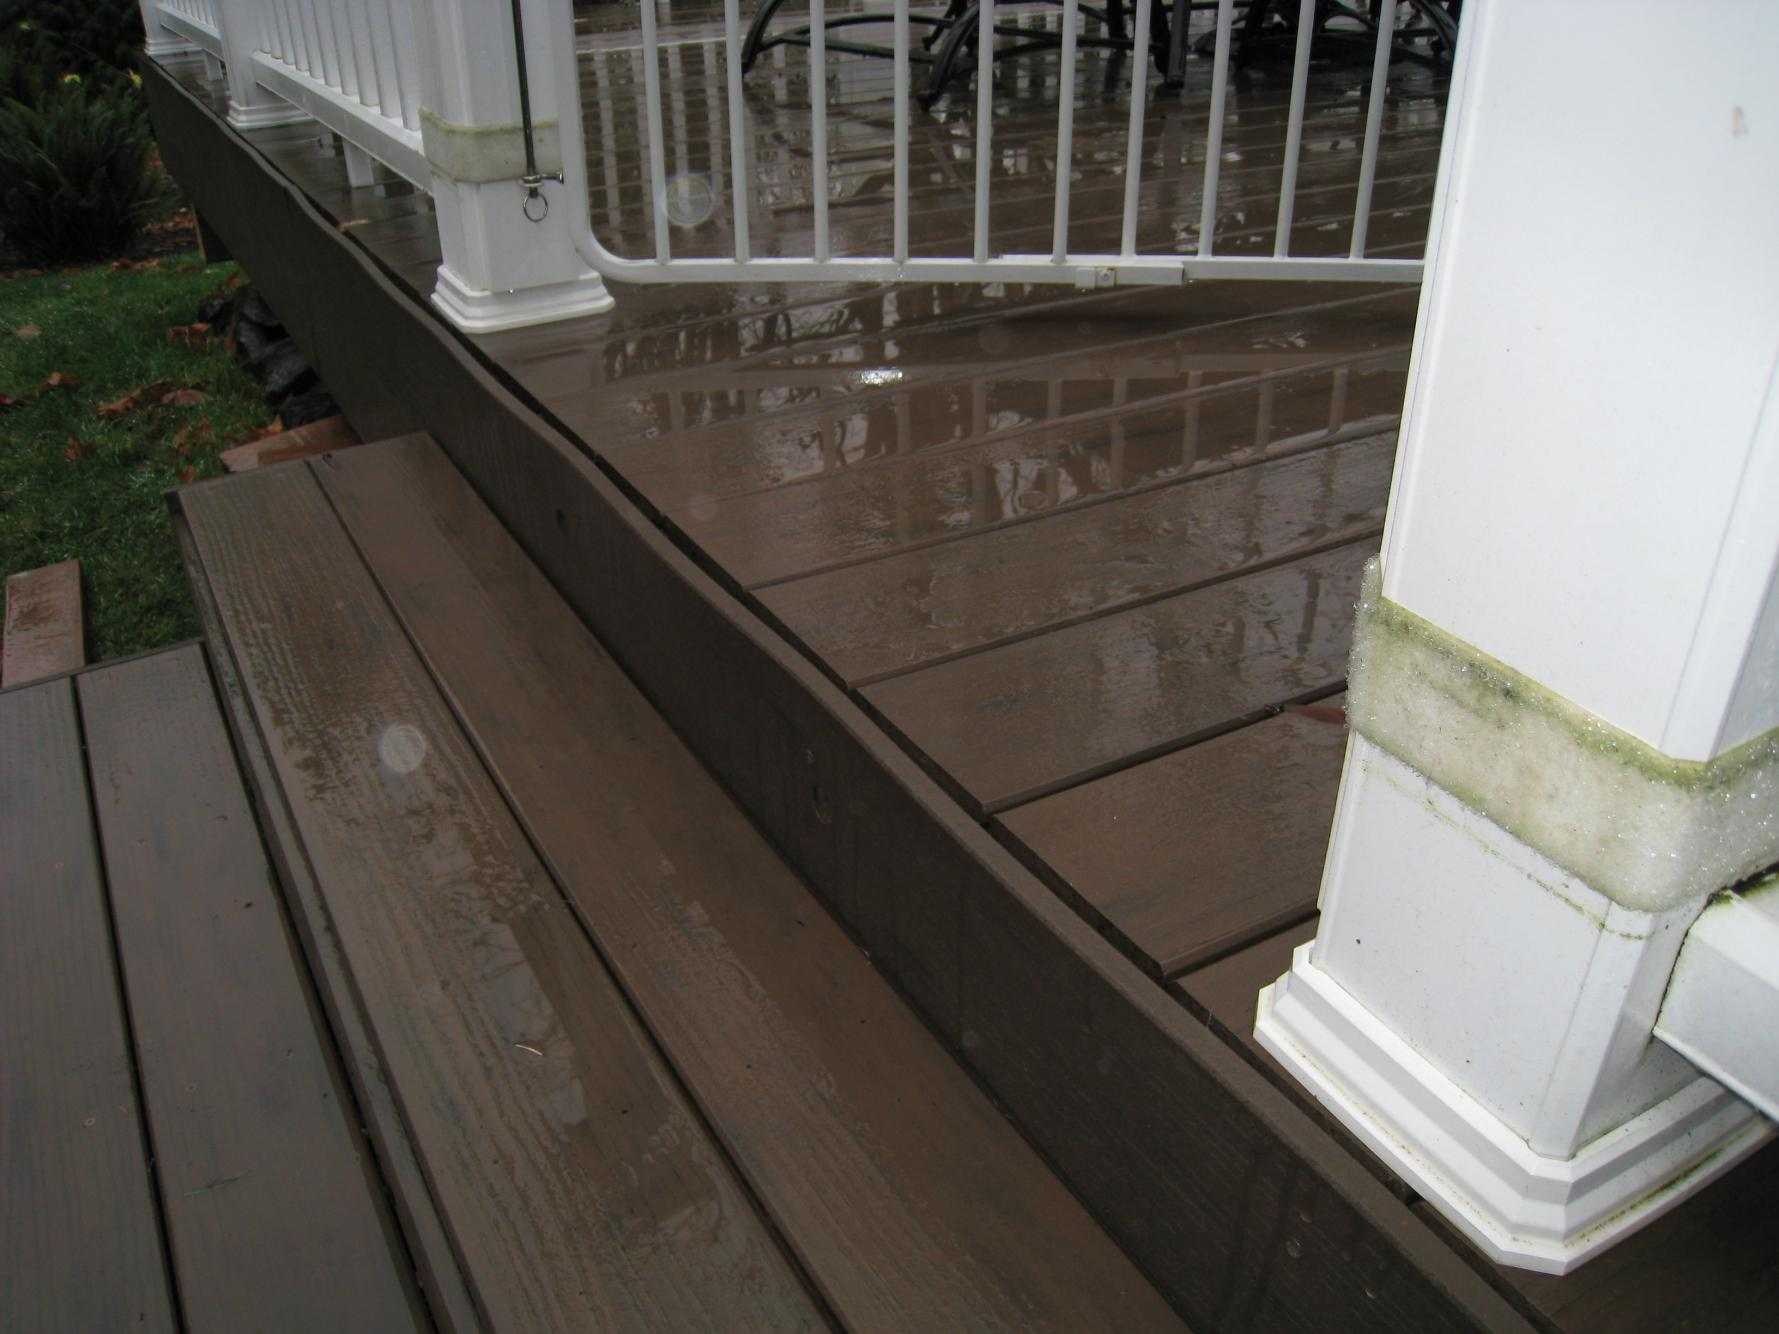 Installing Vinyl Decking | Installing Composite Decking | How to Install Pvc Decking